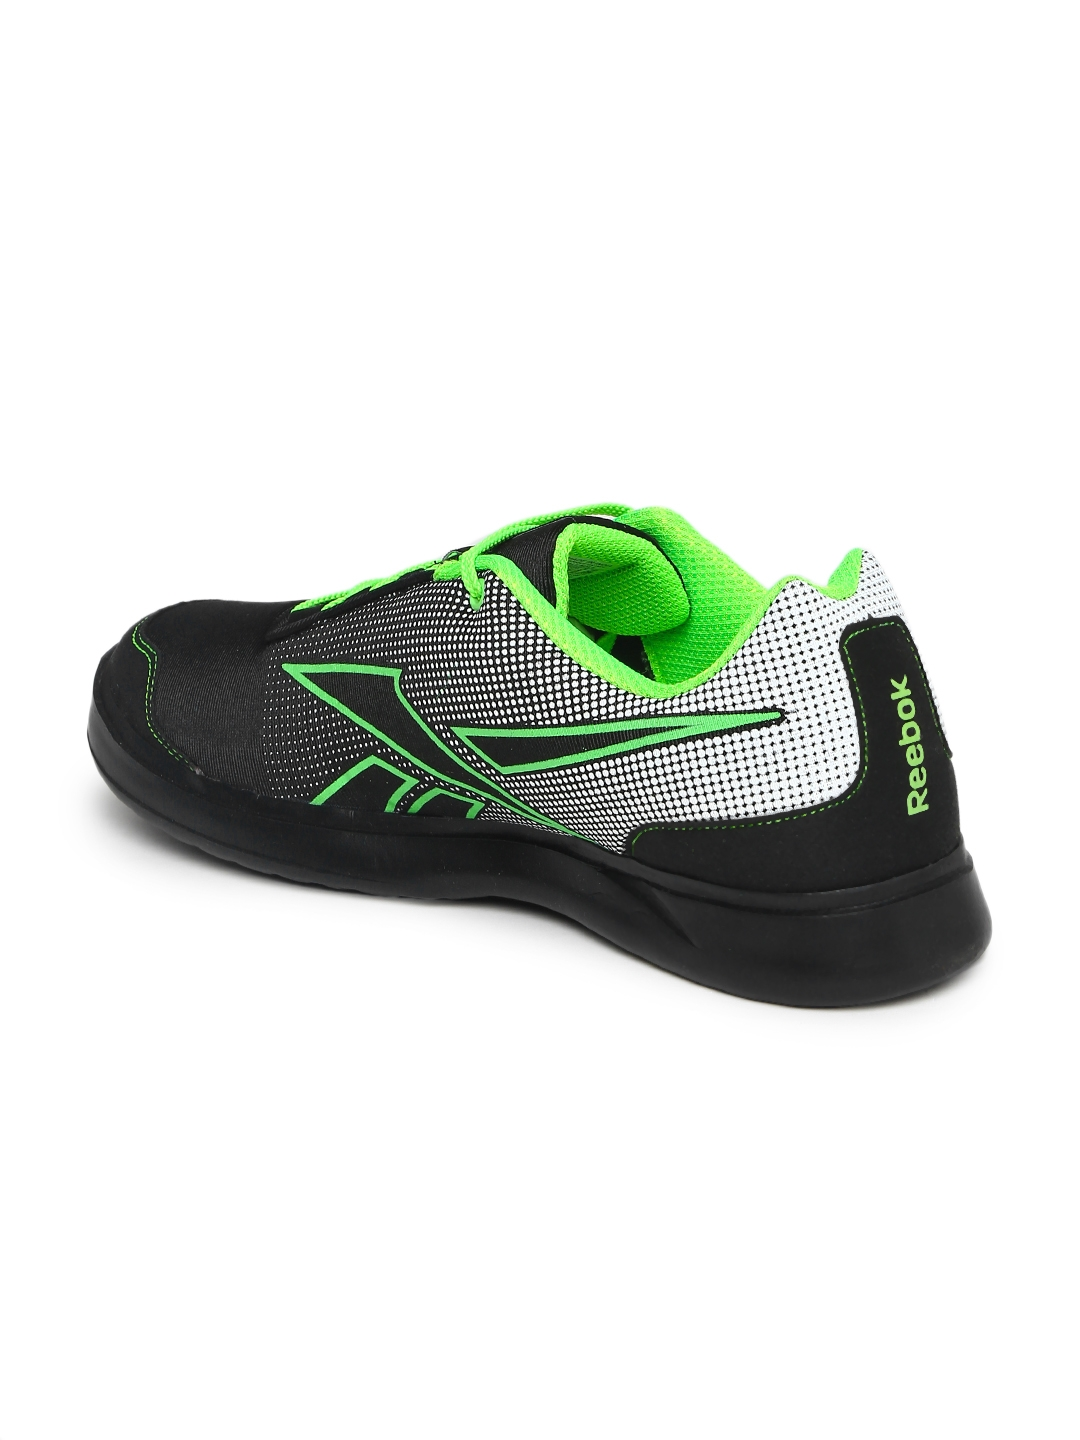 Buy Reebok Men Black Athletic Run 2.0 Running Shoes - Sports Shoes ... 0f1d5f934